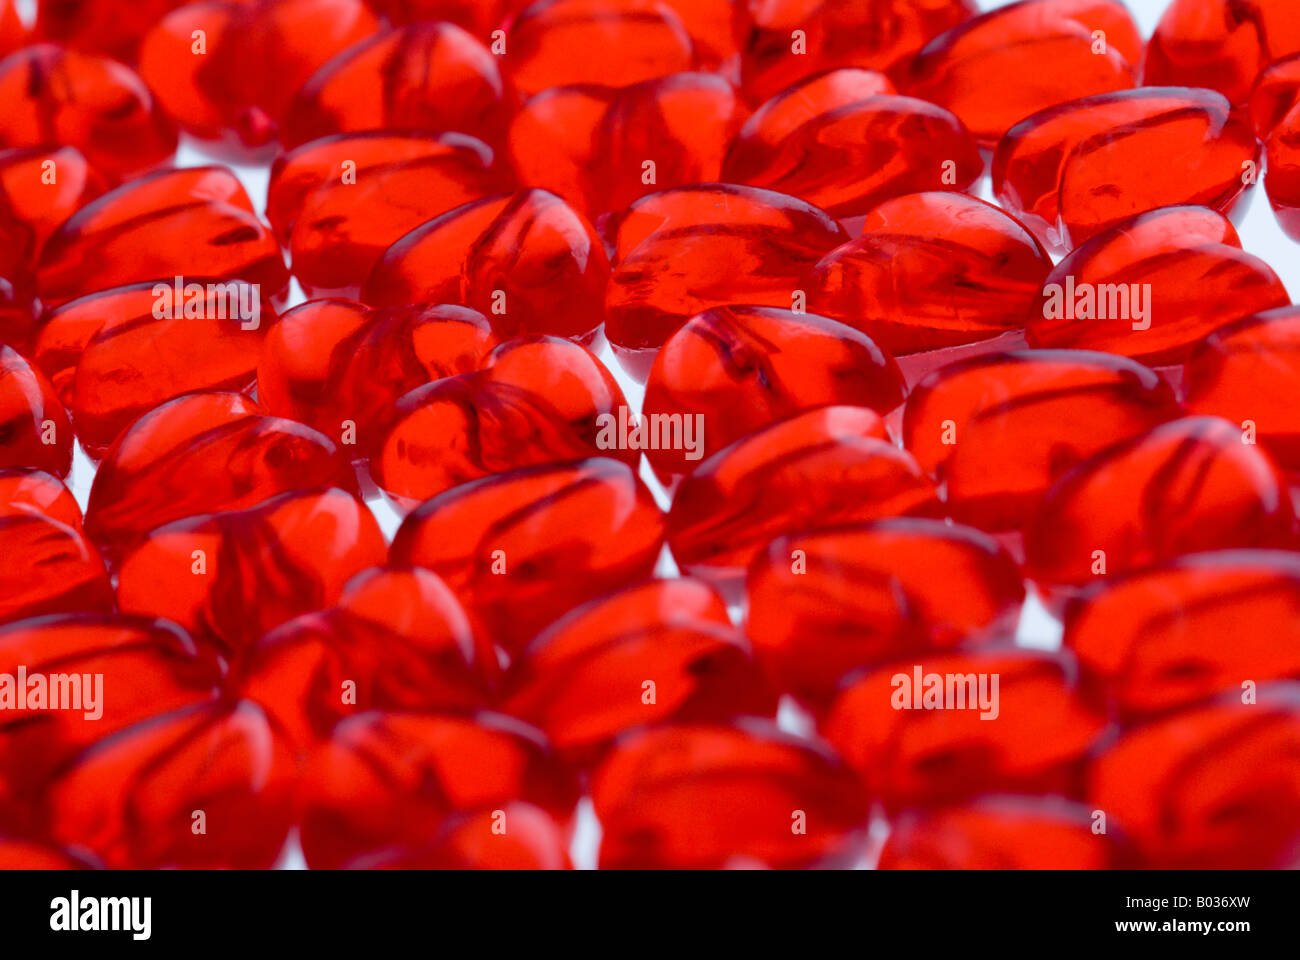 Hearts background - shallow depth of field. Stock Photo